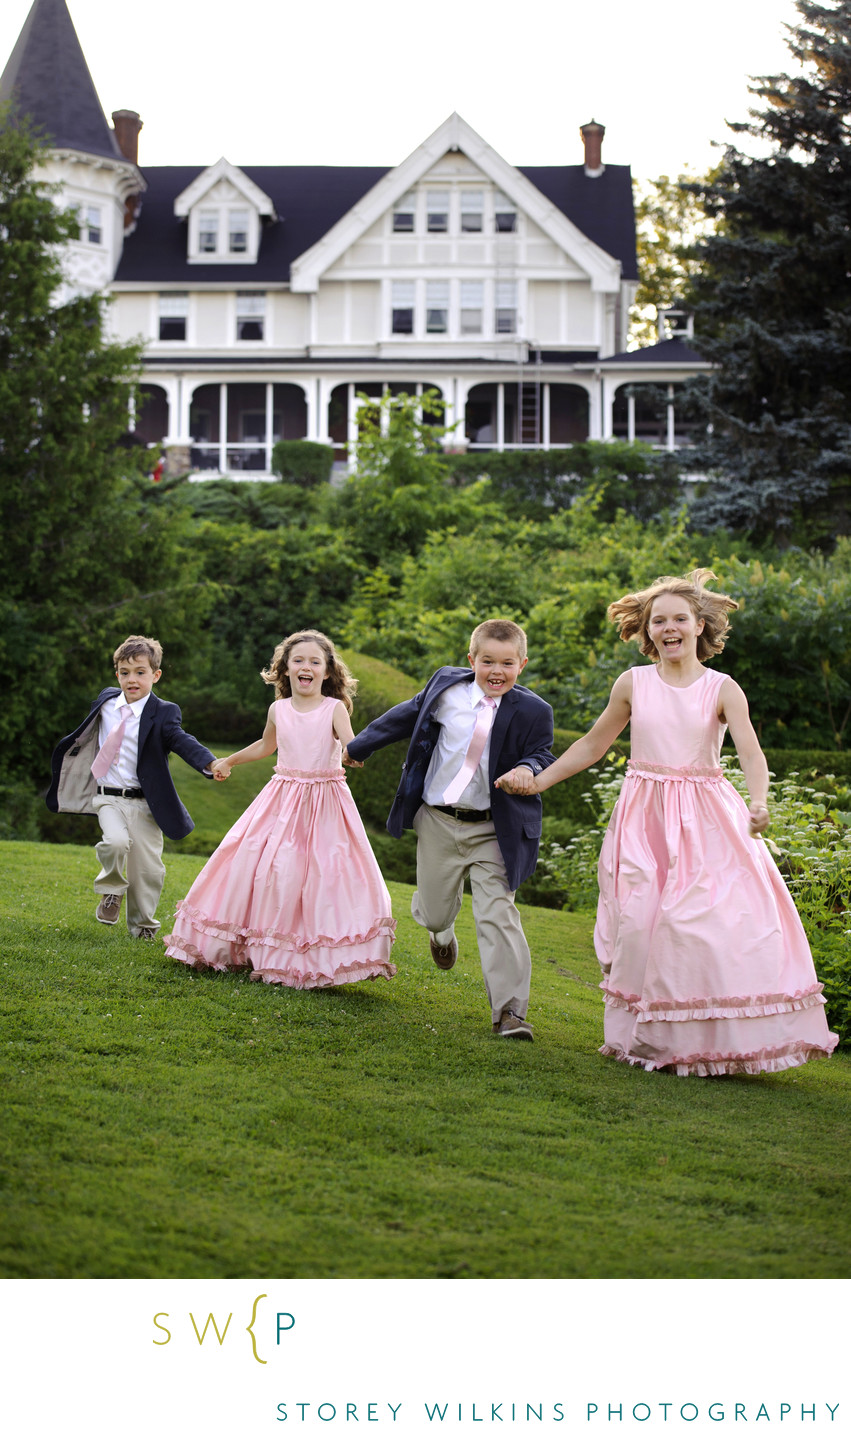 Caledon Mountain Wedding: Flower Girls and Ring Bearers